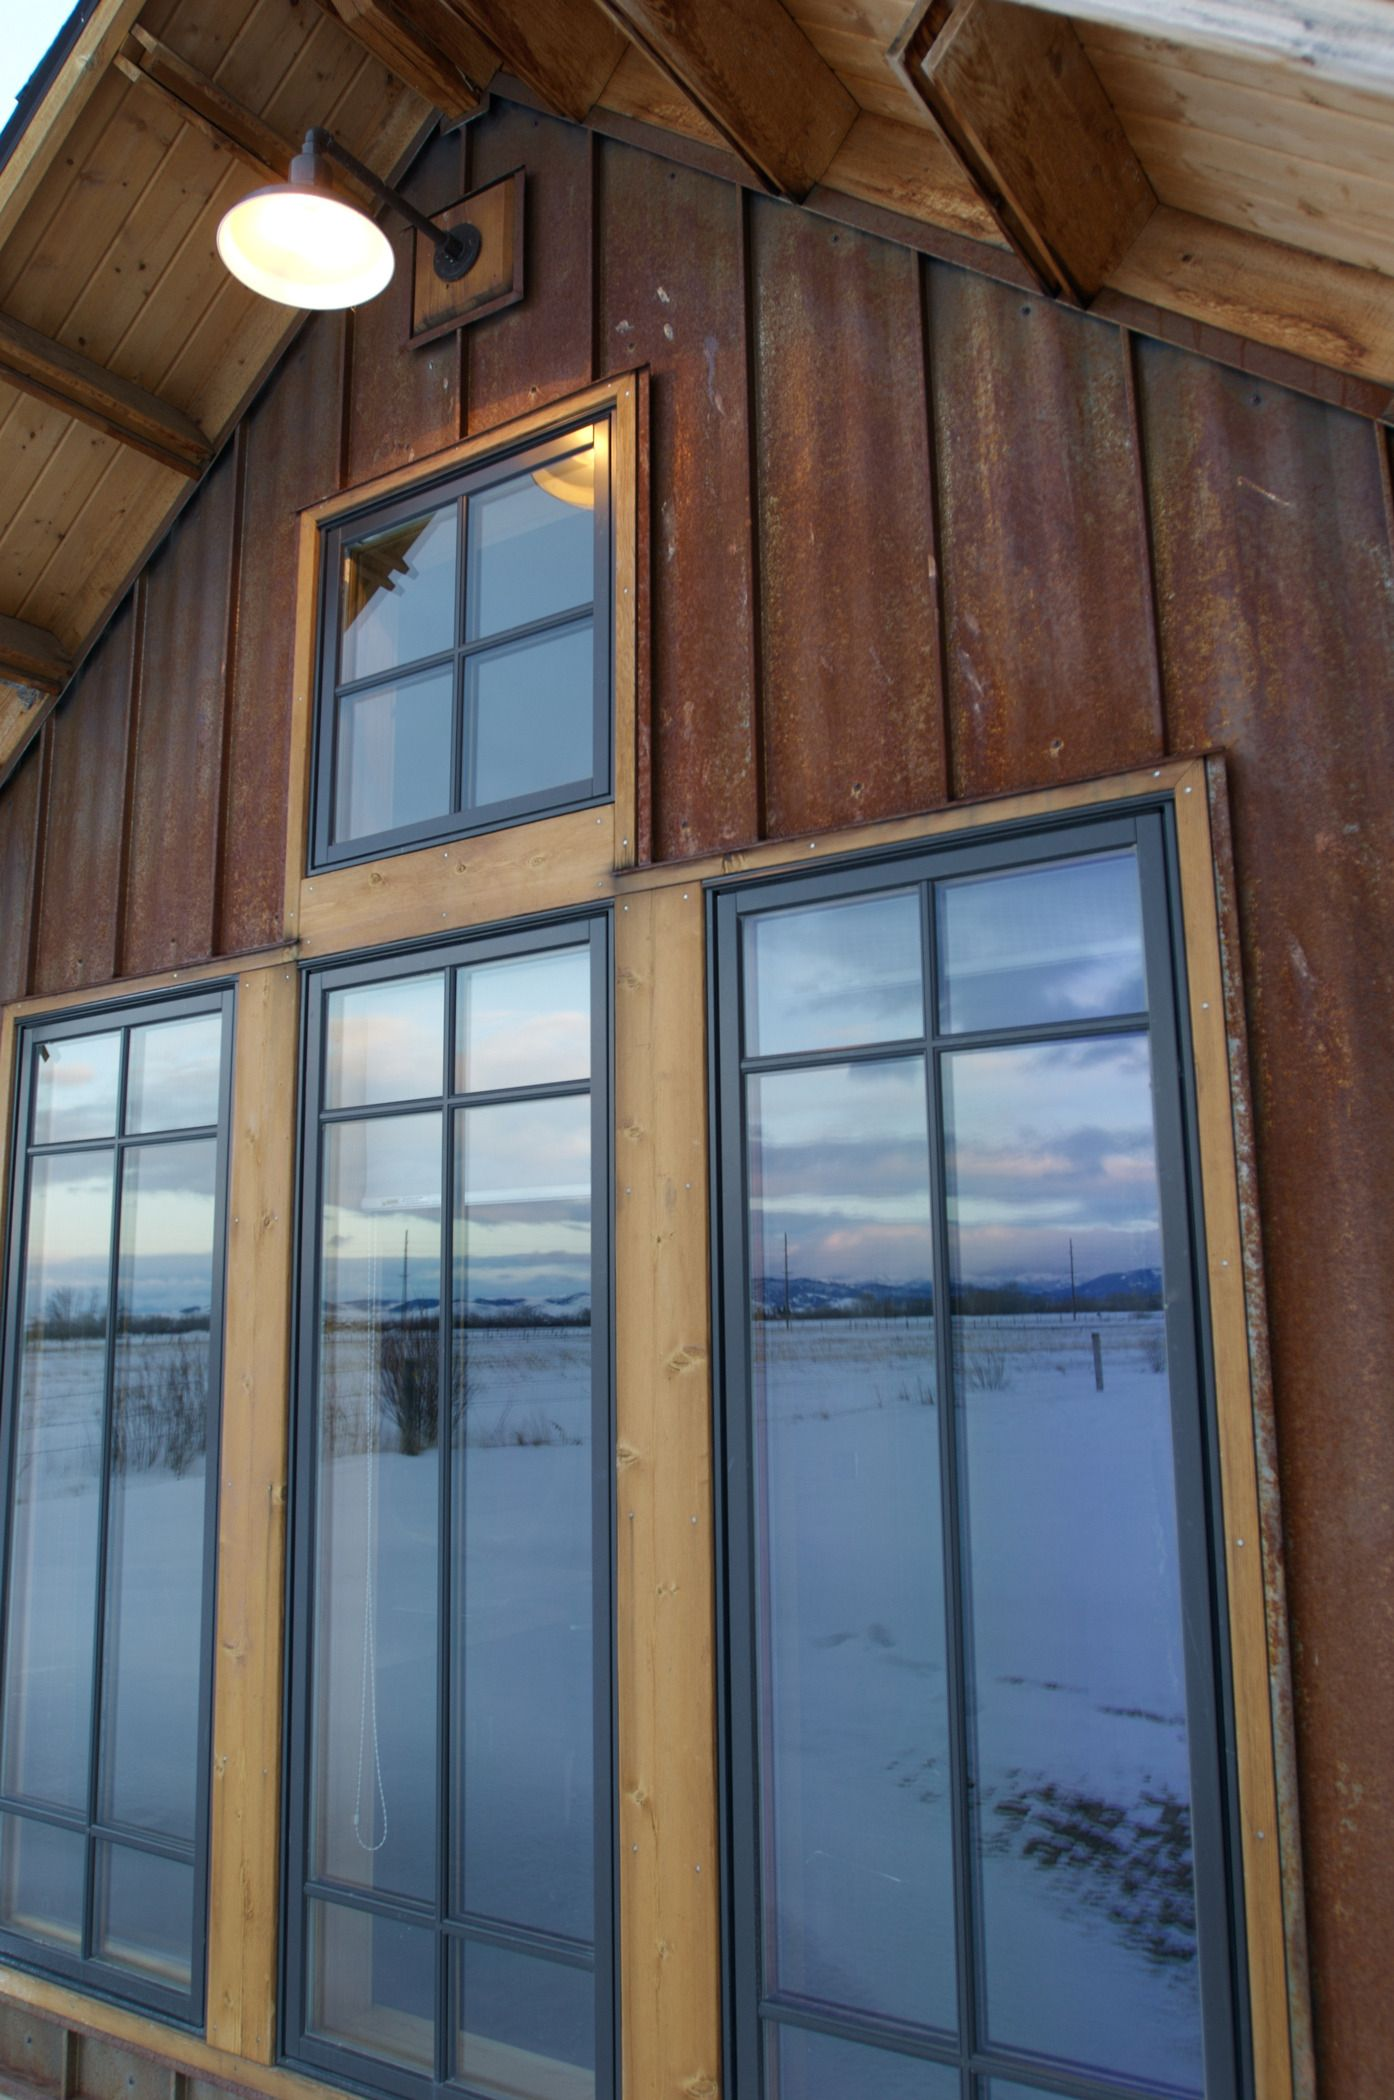 Rustic Siding Done In Steel Will Outlast Other Board And Batten Style Products